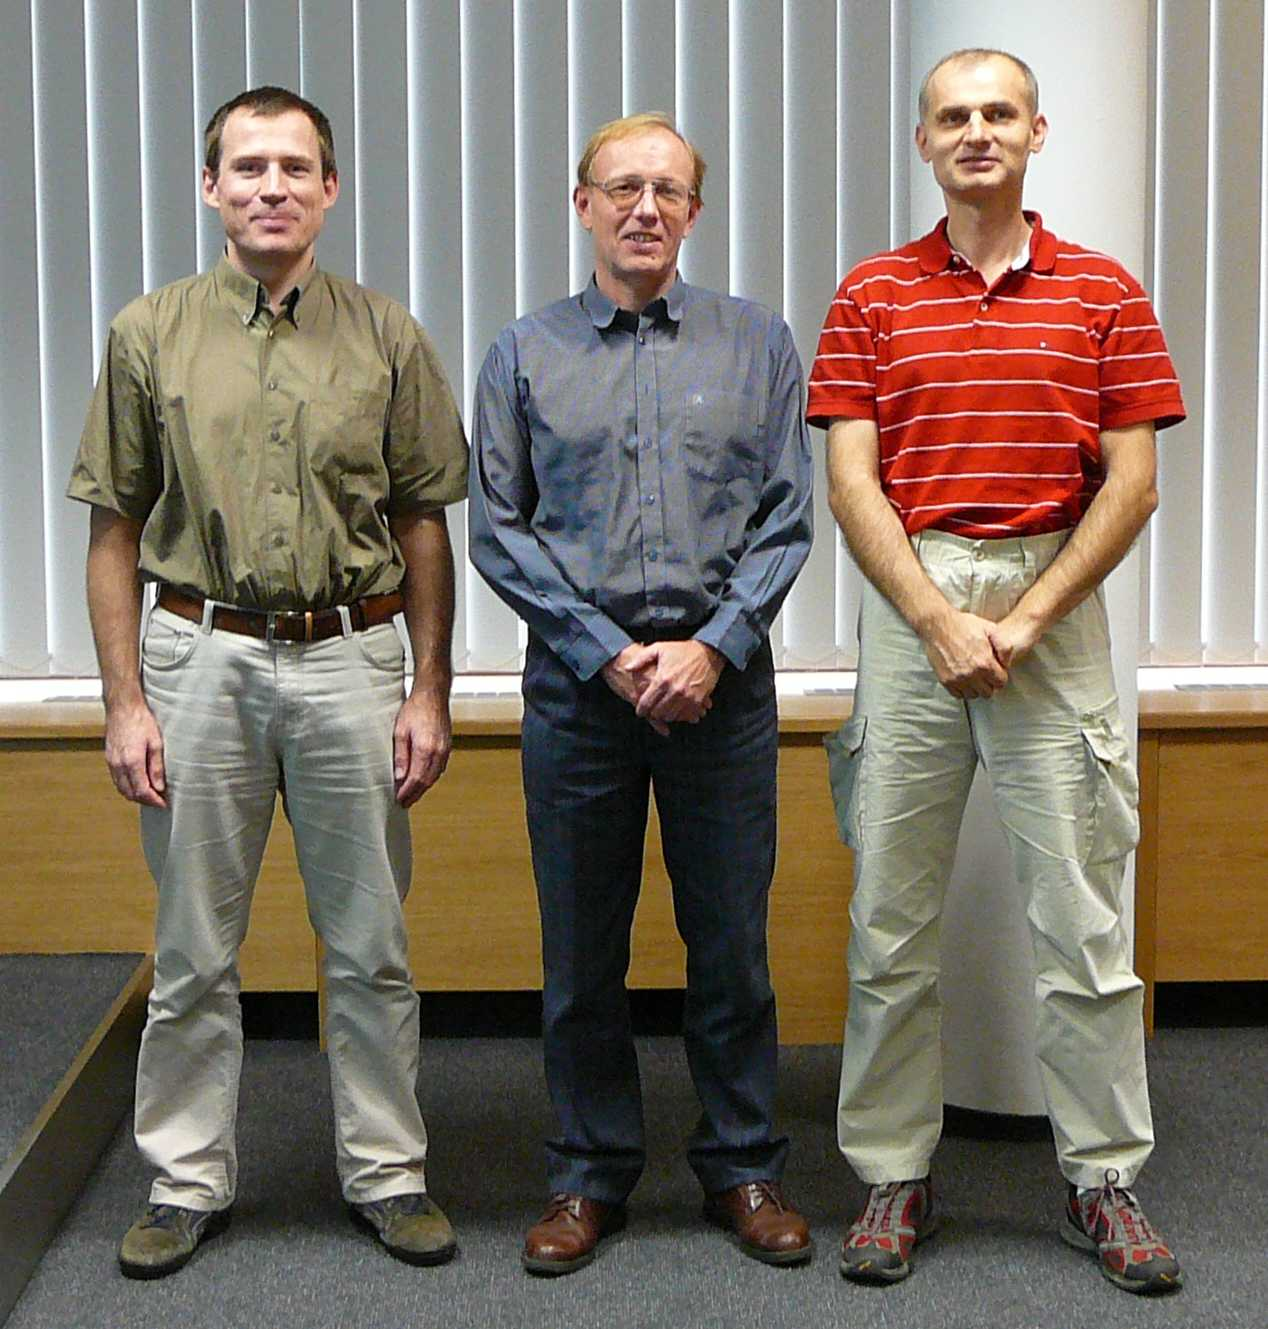 Picture of the leaders of Czech speech groups (from the left): Honza Cernocky (BUT), Jan Nouza (TUL), Ludek Muller (UWB)